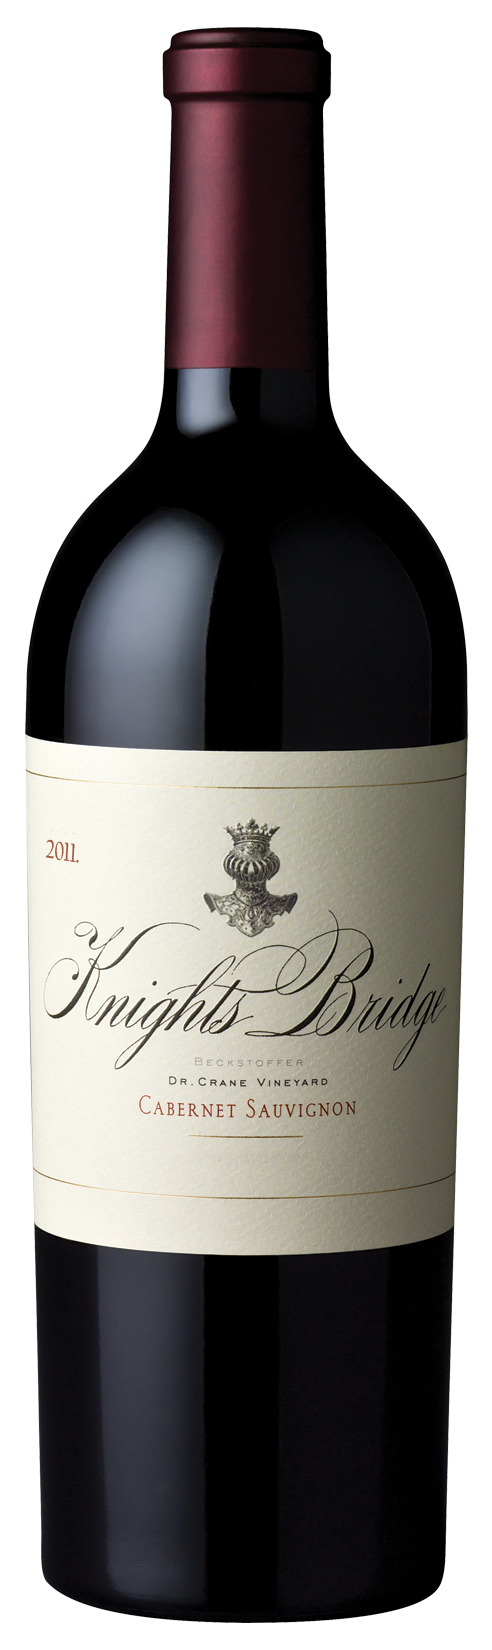 Knights Bridge, Point De Chevalier, Cabernet Sauvignon, 2011